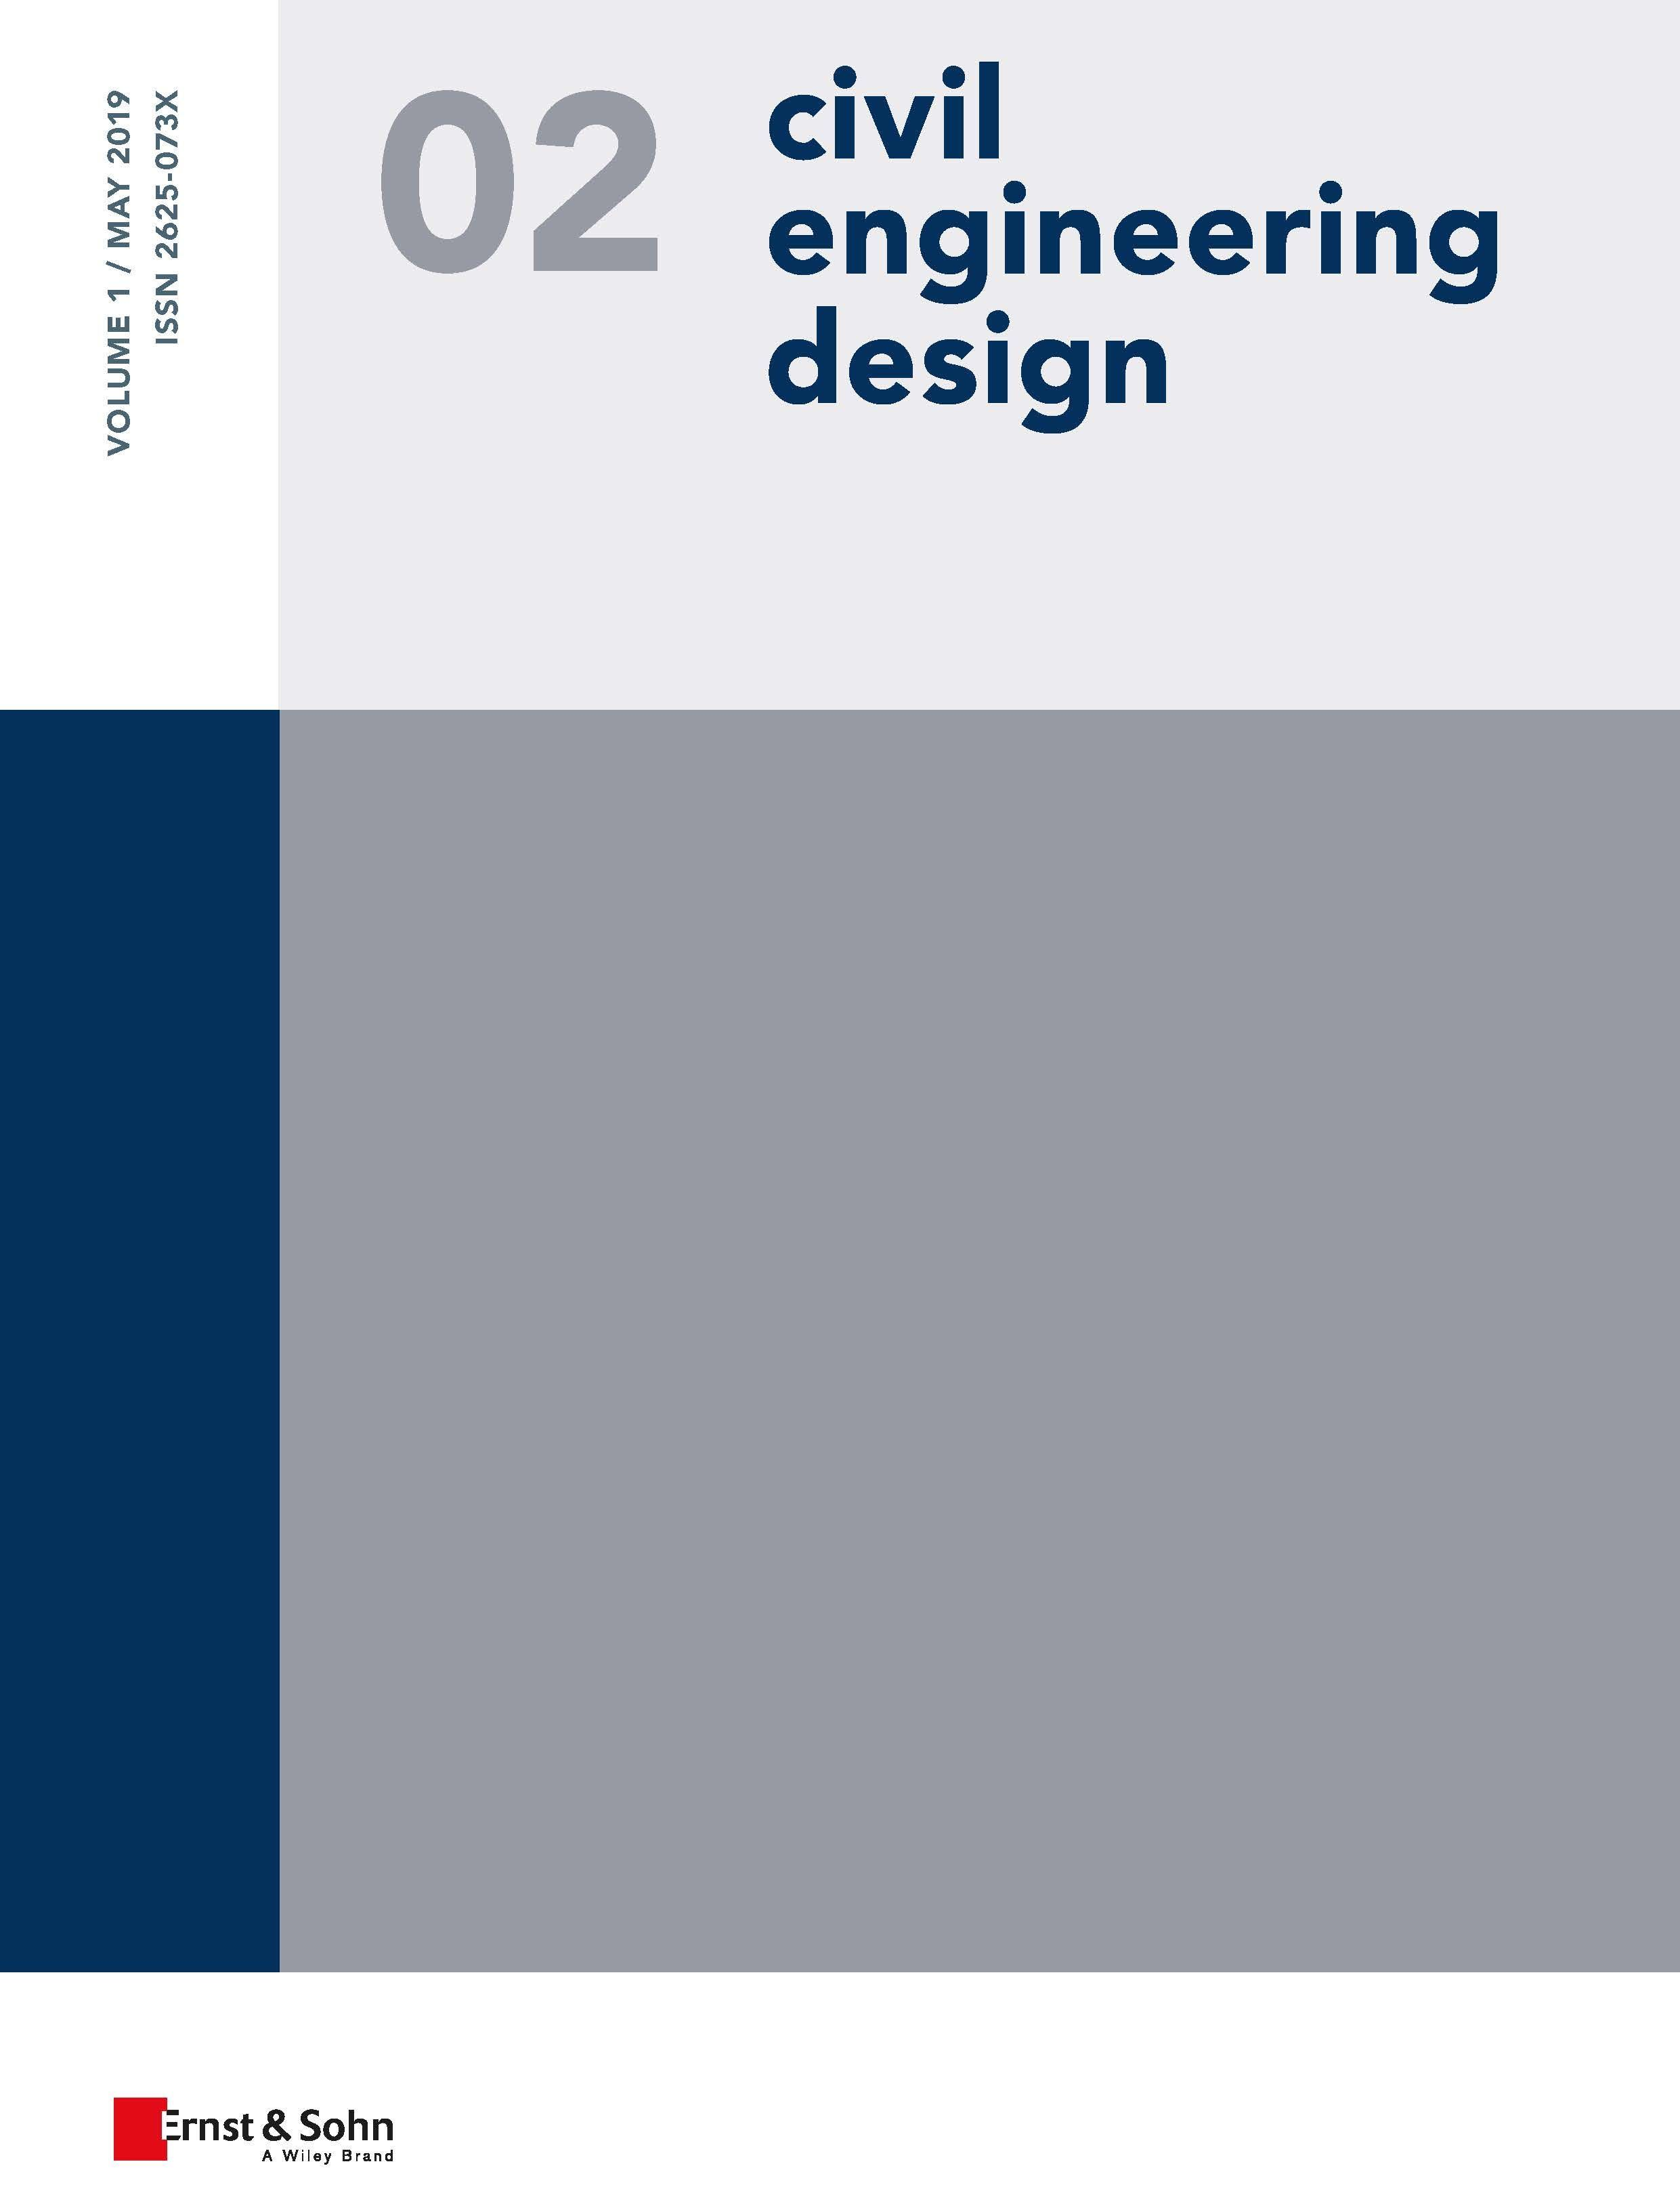 Civil Engineering Design 2/2019 published